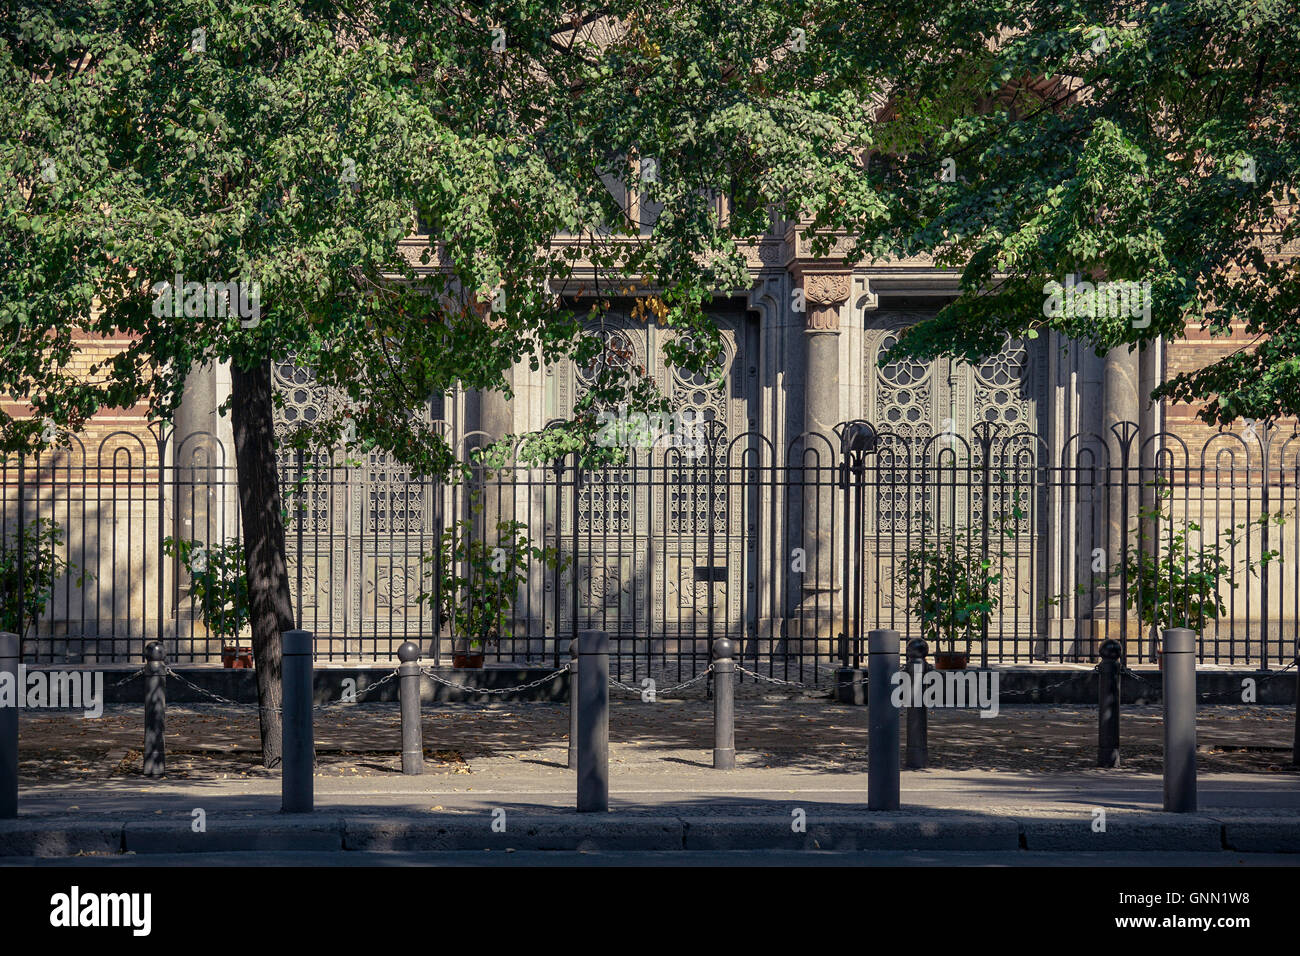 Fenced entrance of jewish New Synagogue in Berlin, Germany Stock Photo